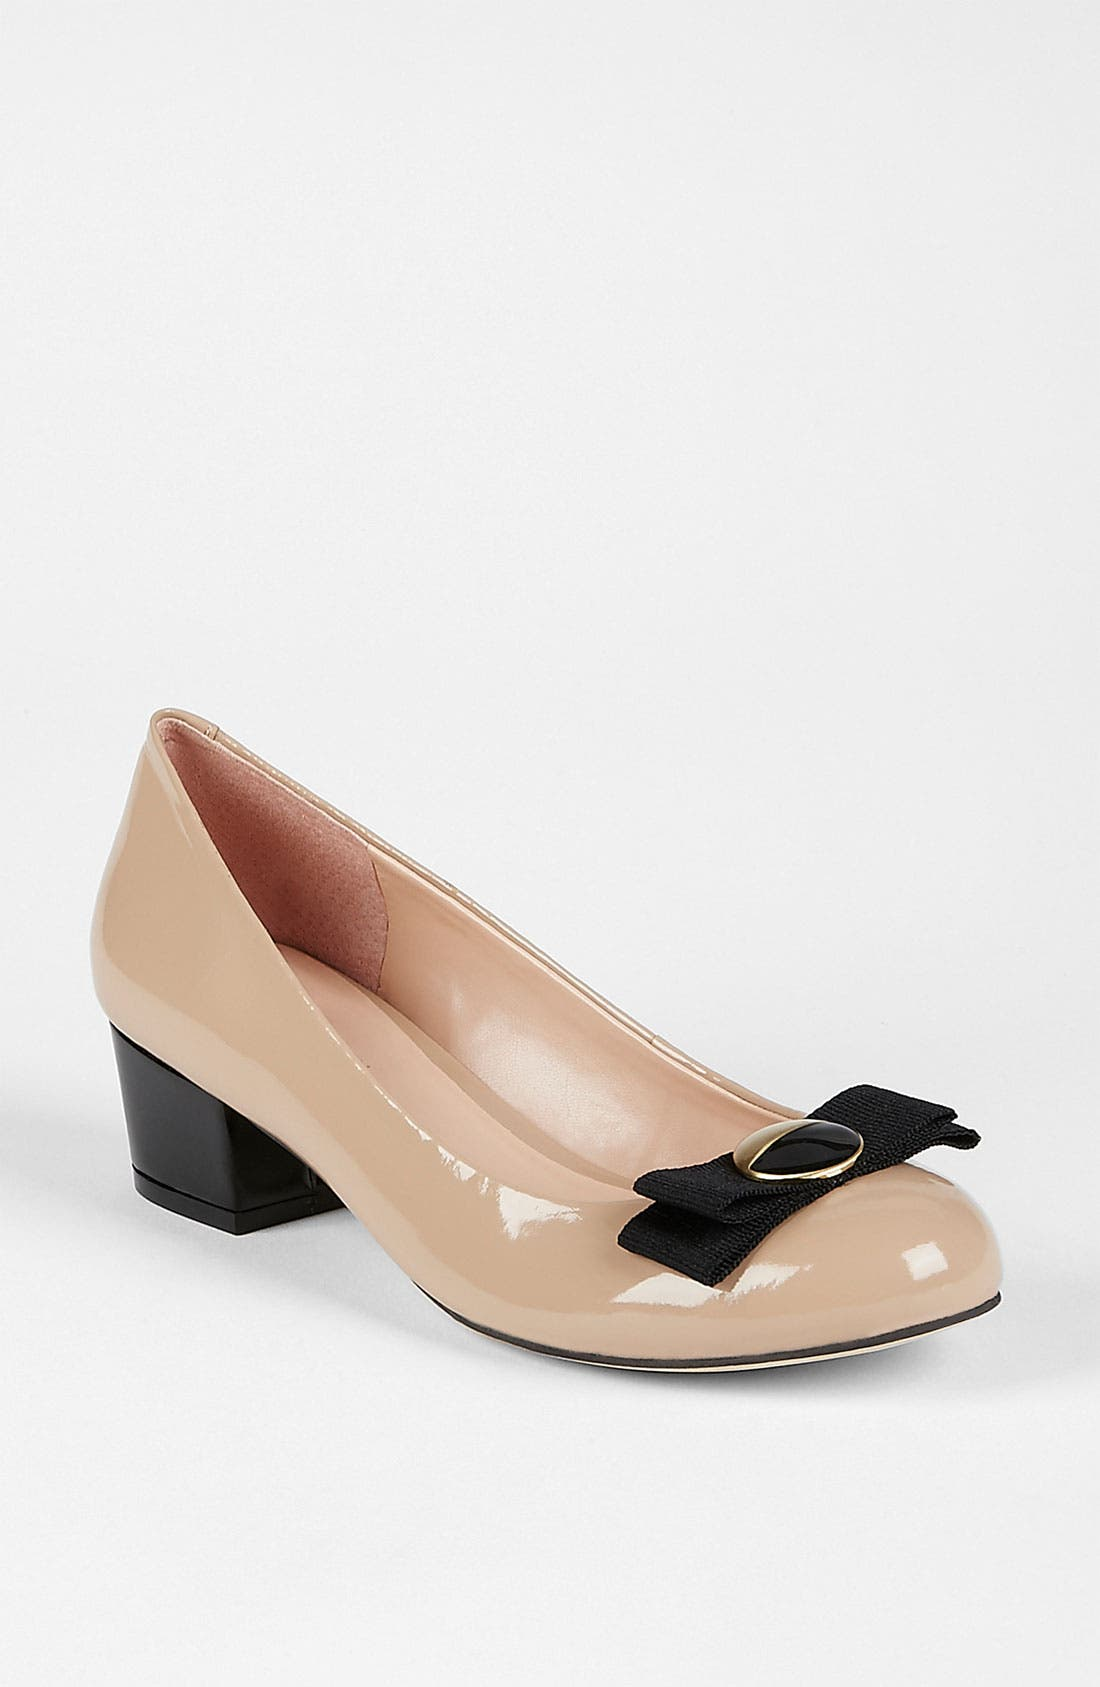 Alternate Image 1 Selected - Sole Society 'Carlee' Pump